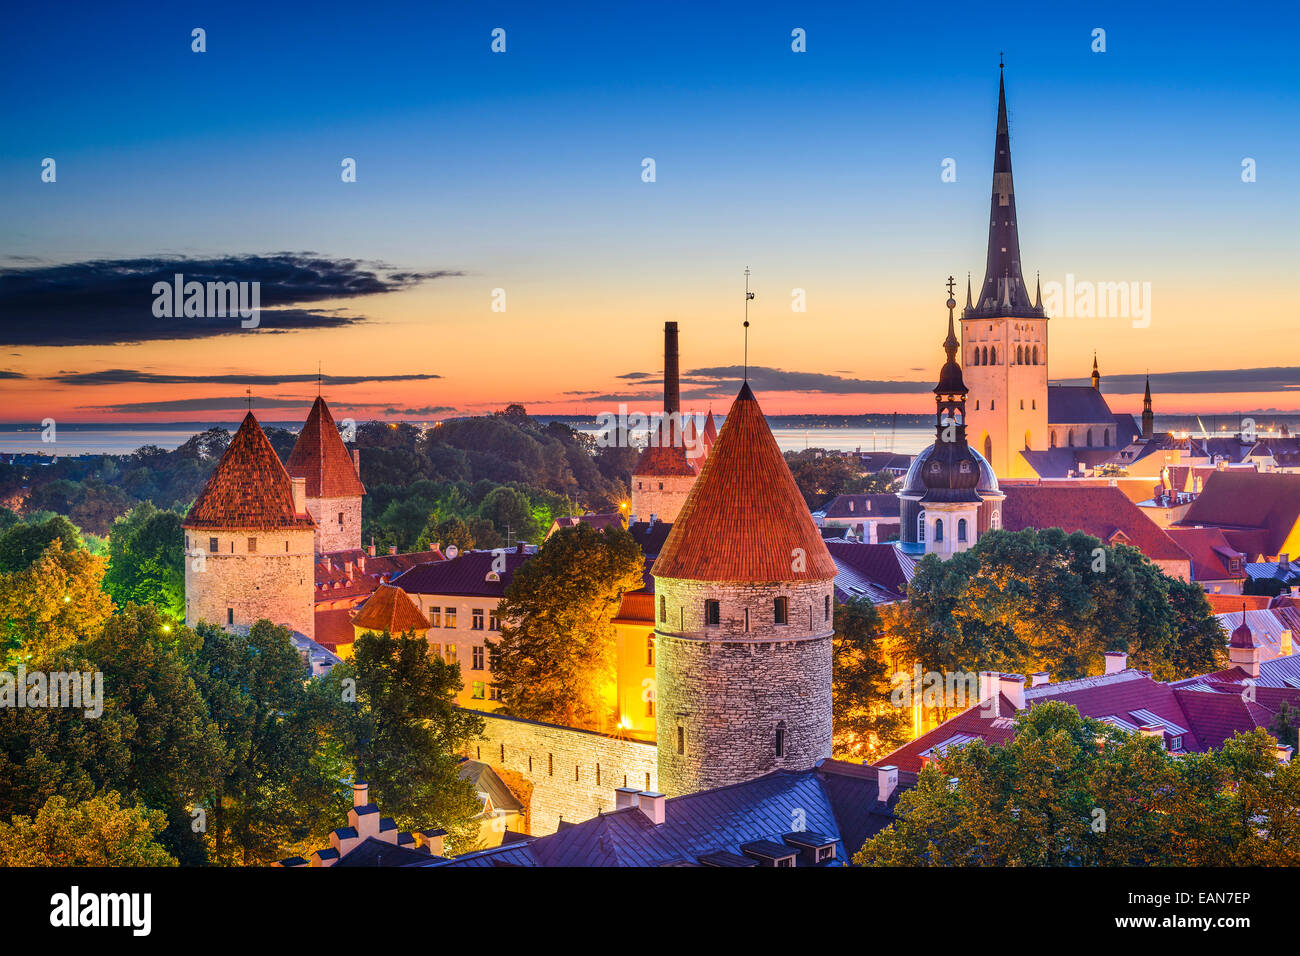 Tallinn, Estonia old city skyline at dawn. - Stock Image